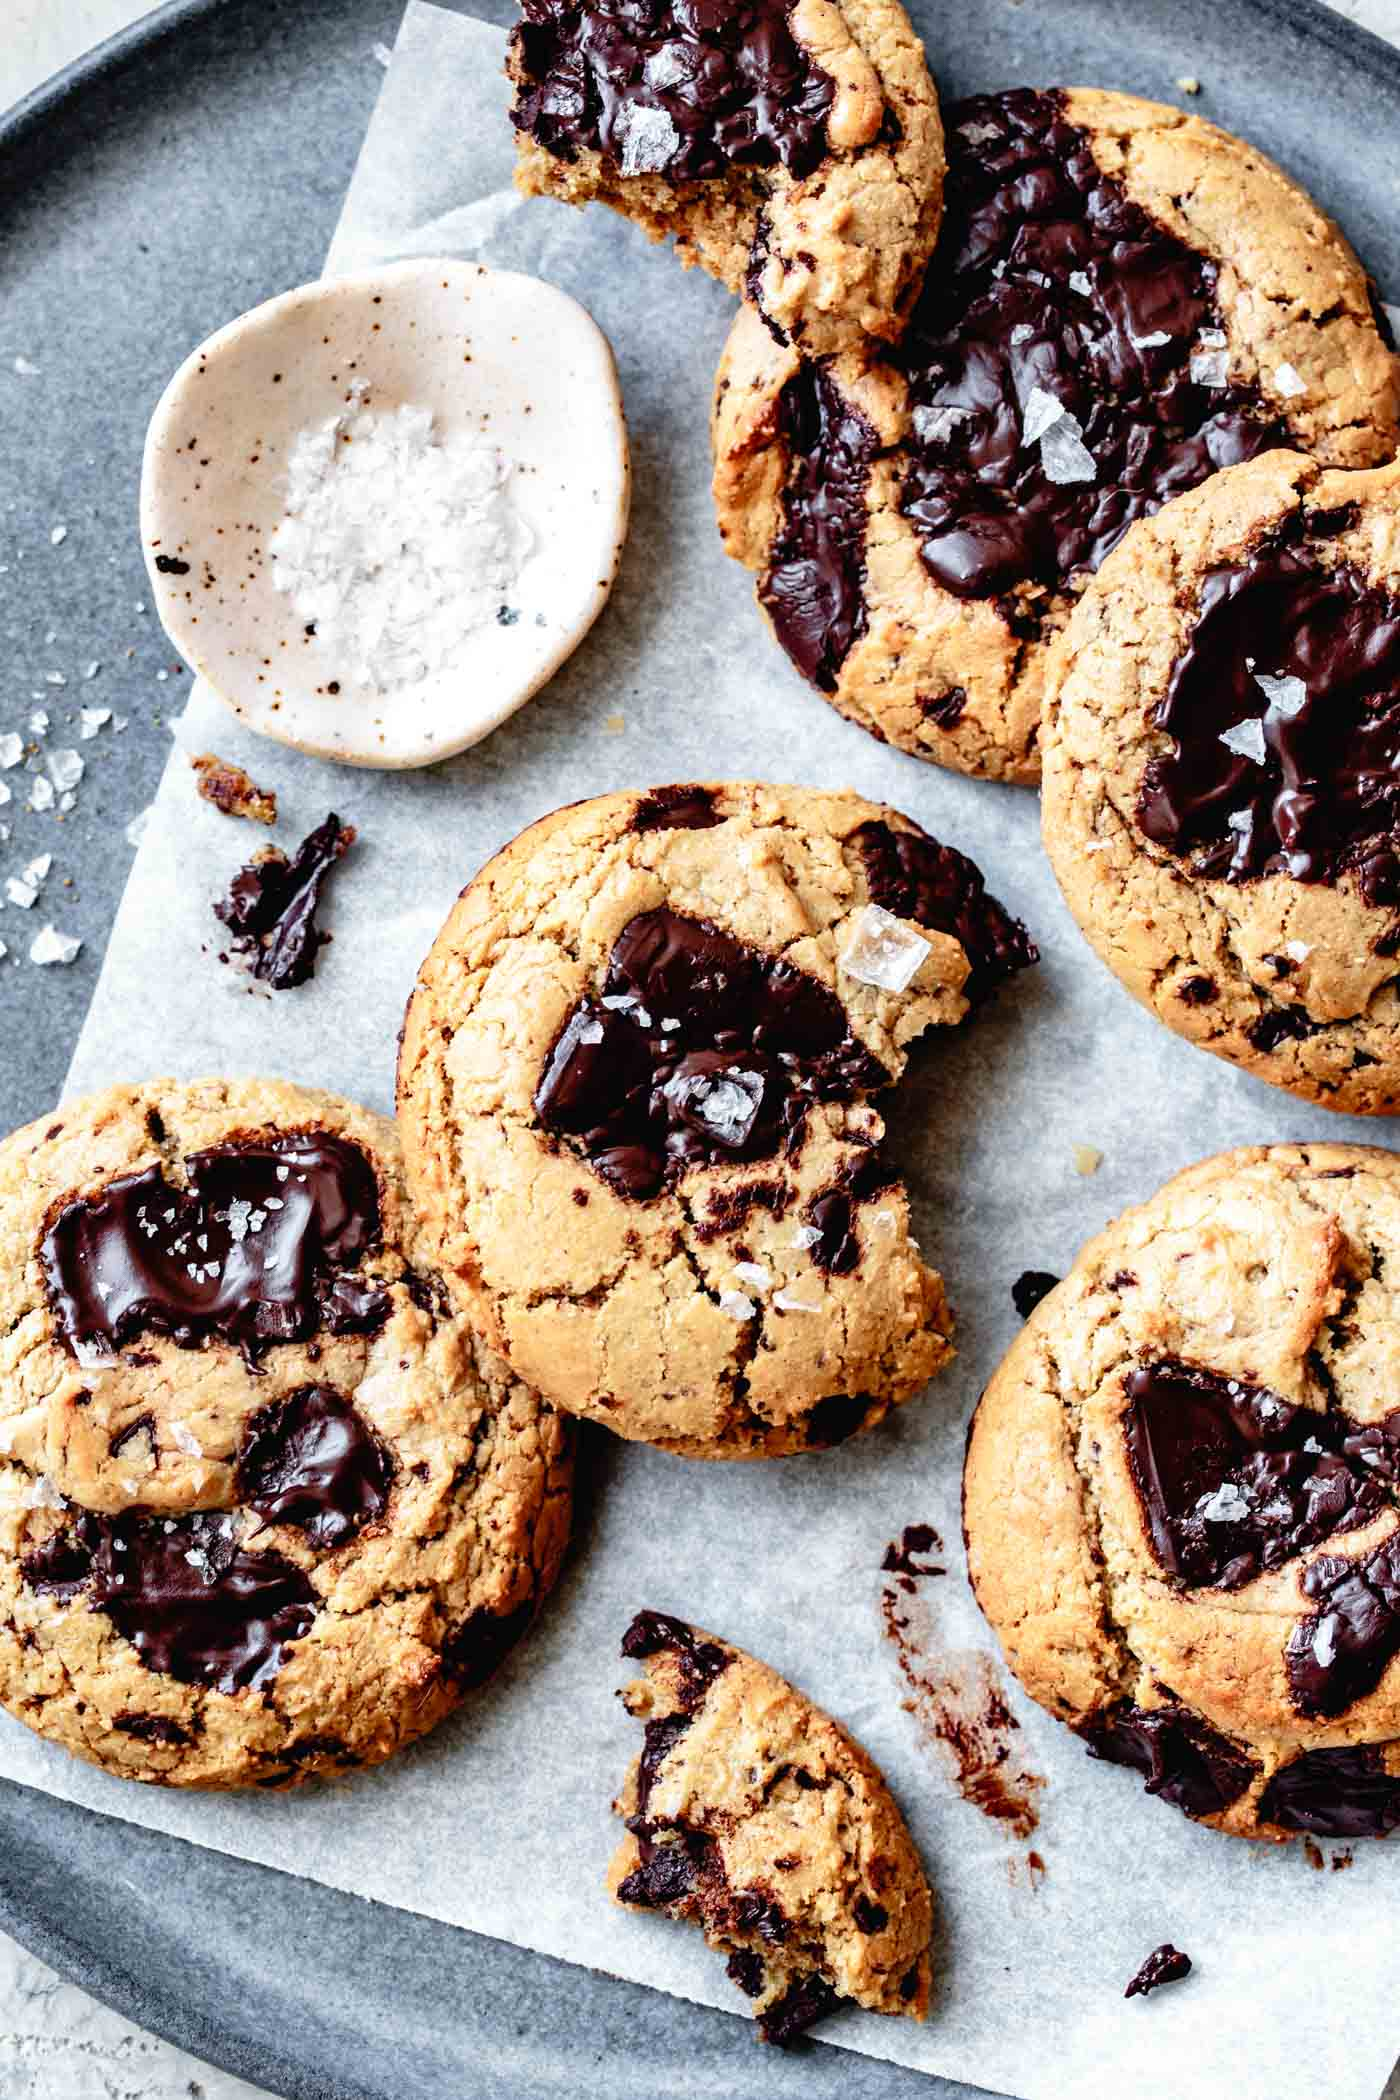 a plate full of glossy paleo vegan chocolate chip cookies